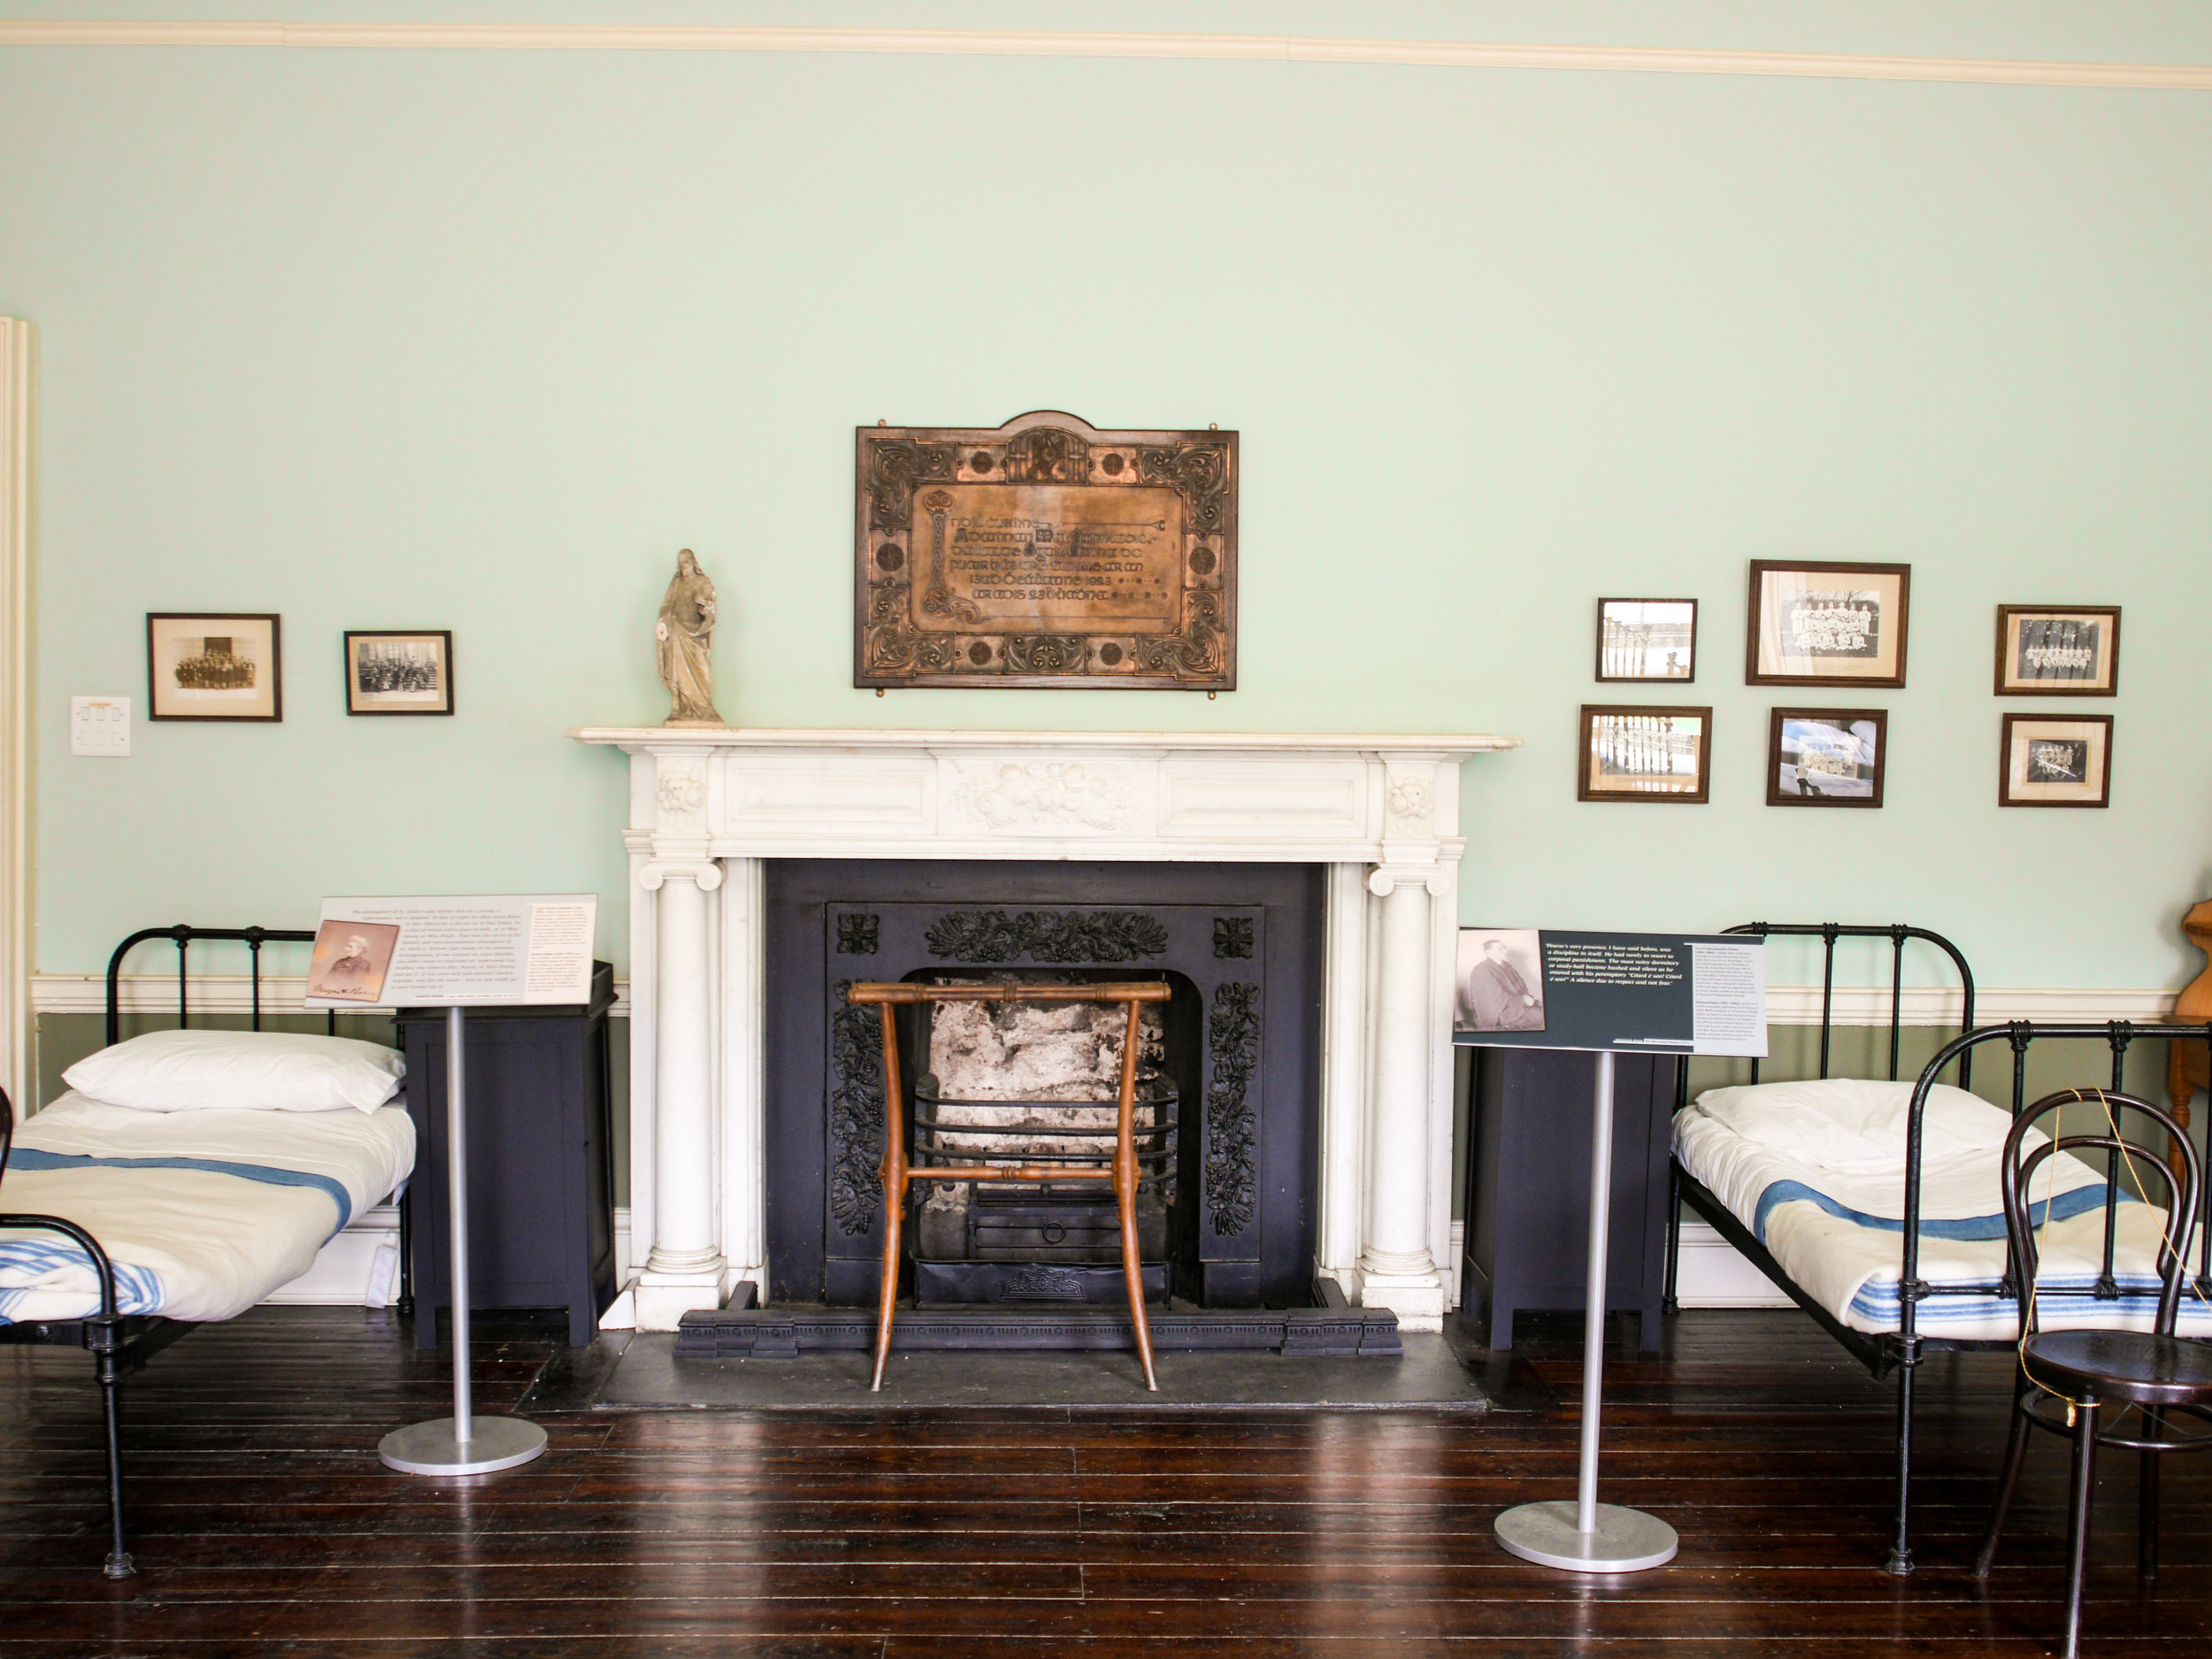 The Dormitory at Pearse Museum